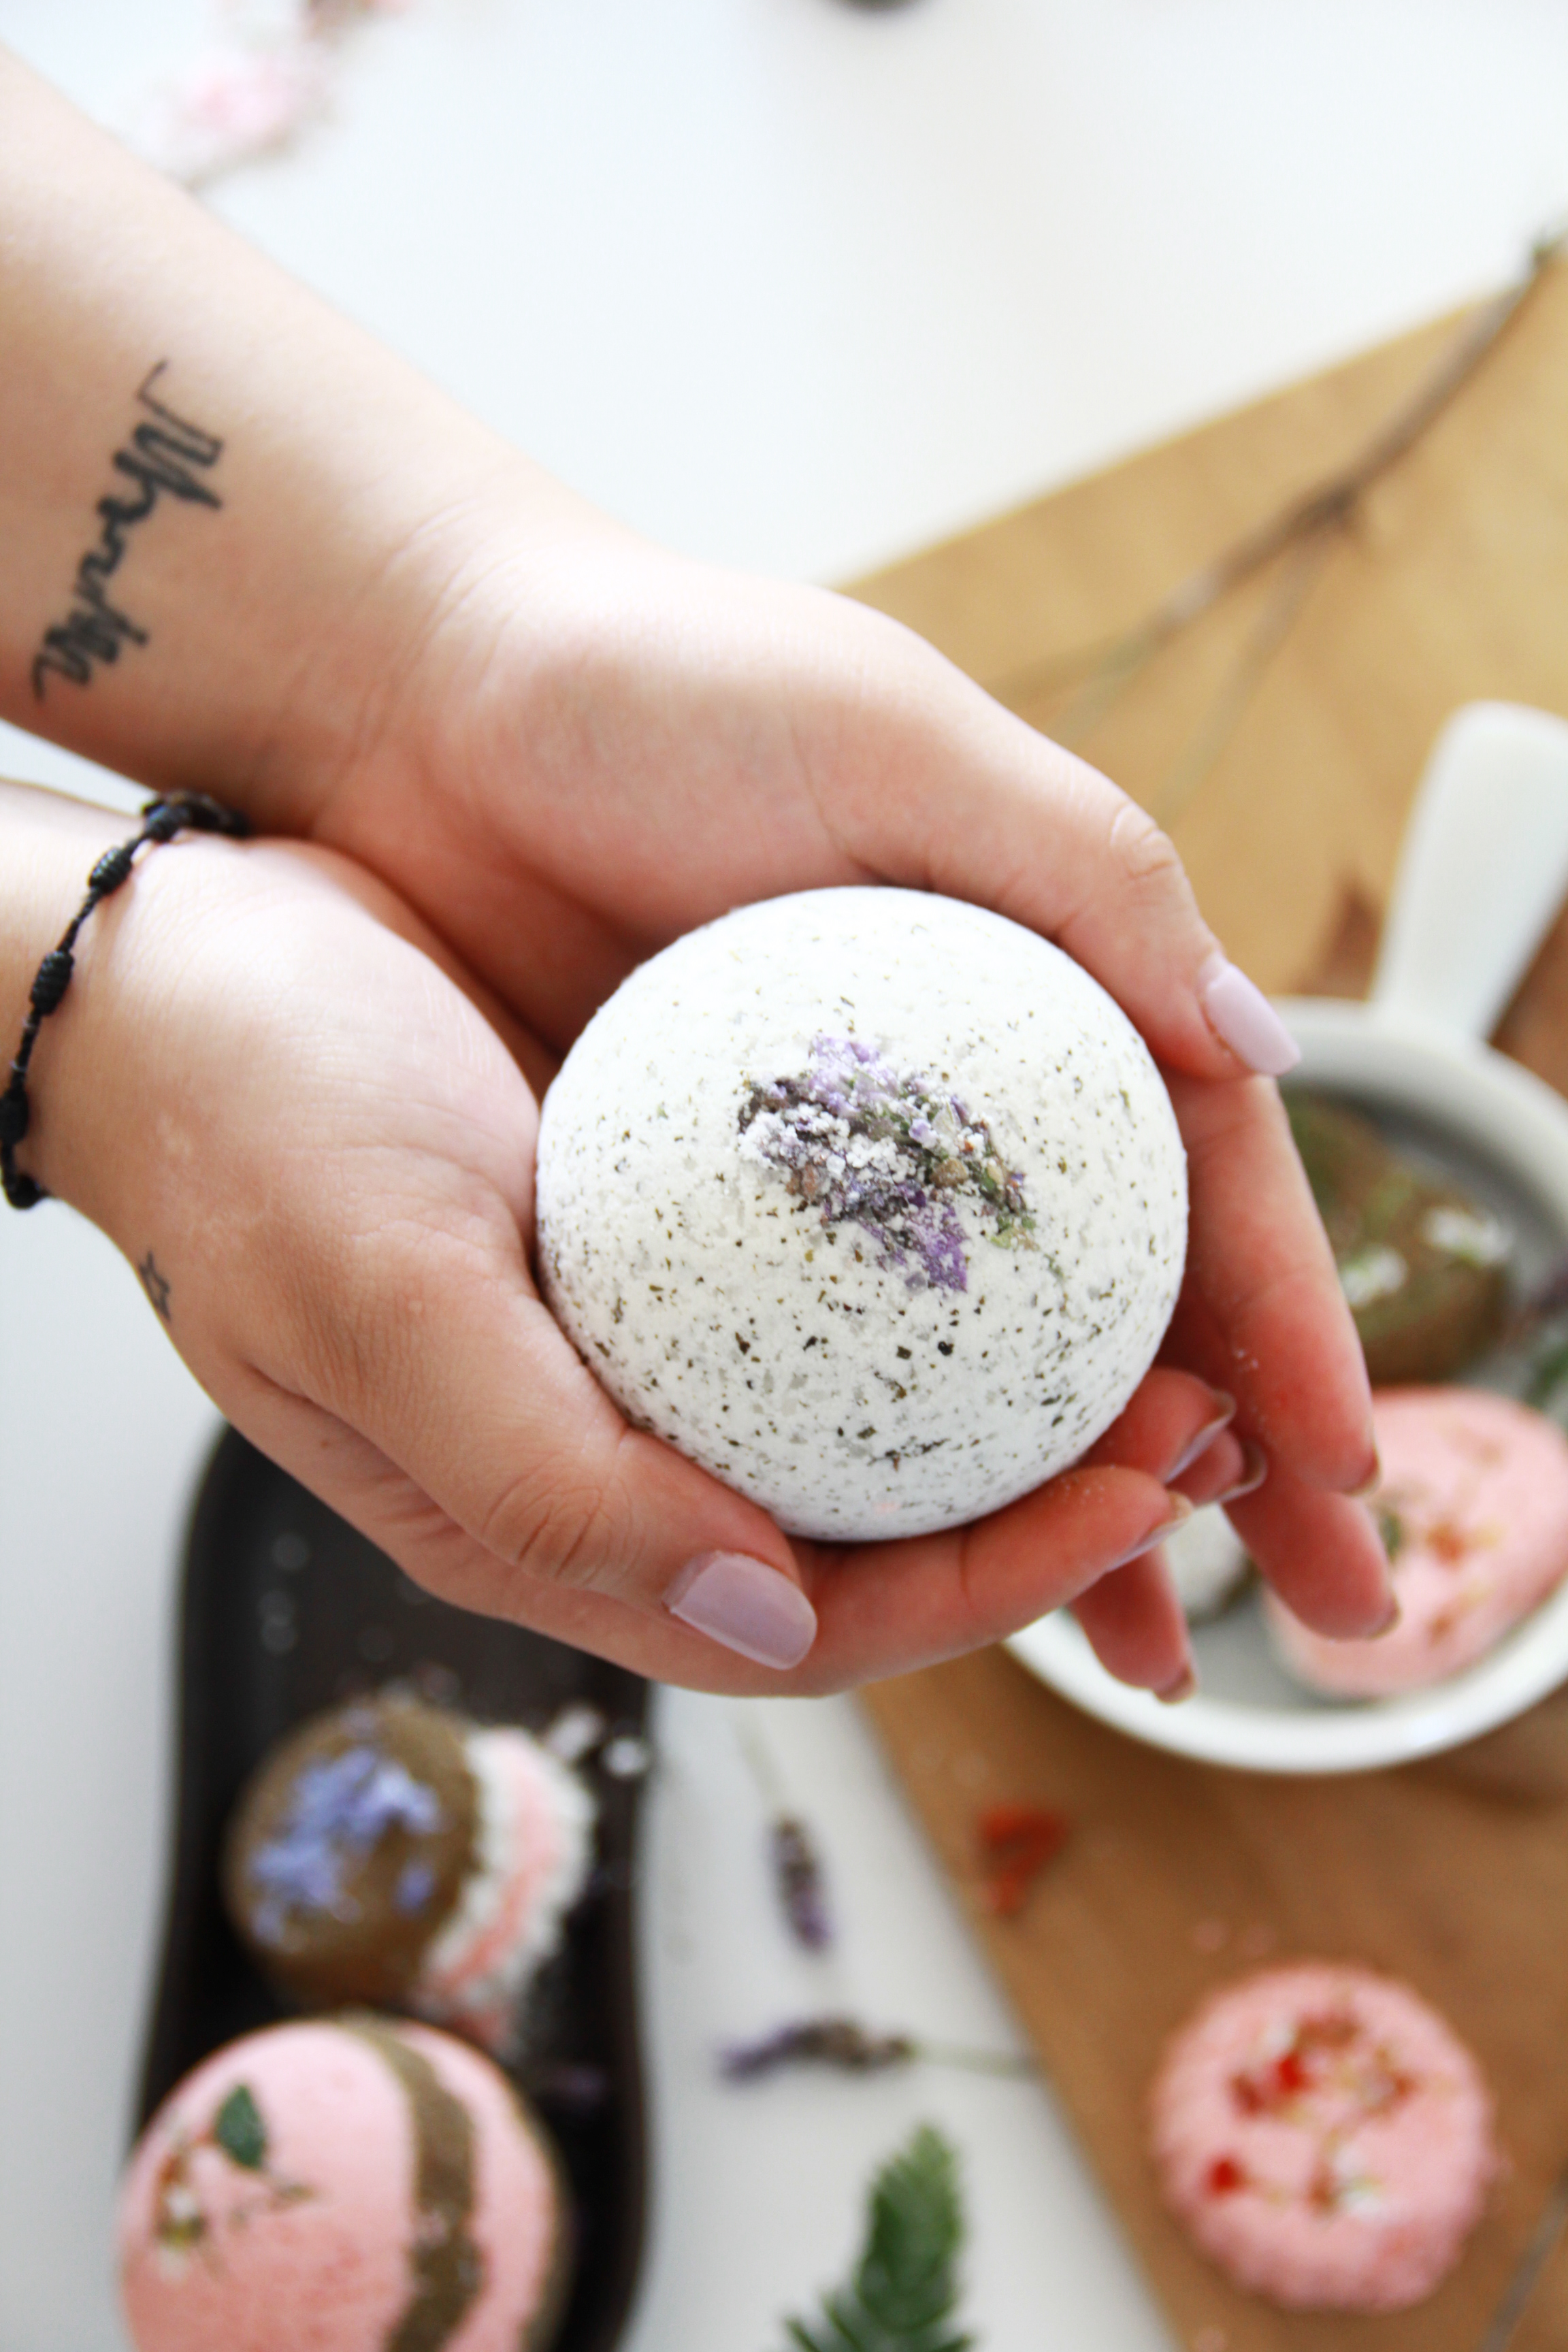 Lush-Inspired-Bath-Bomb-Recipe-DIY-spa-treat-beauty-golden-strokes-ingredients-easy-quick-bombas-caseras-de-tina